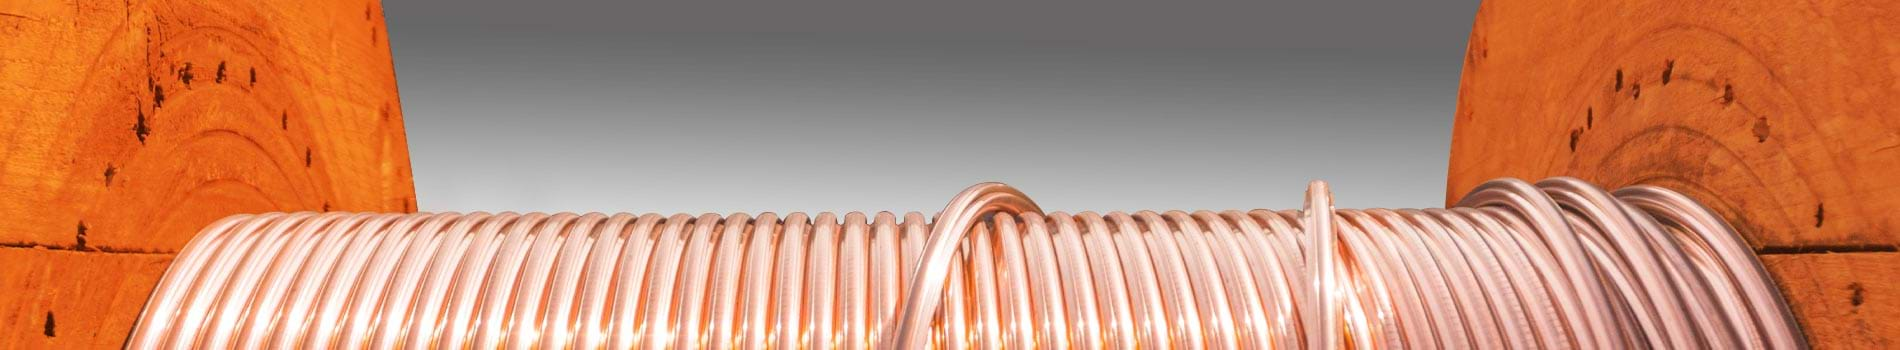 Eland Cables Cable Information Copper